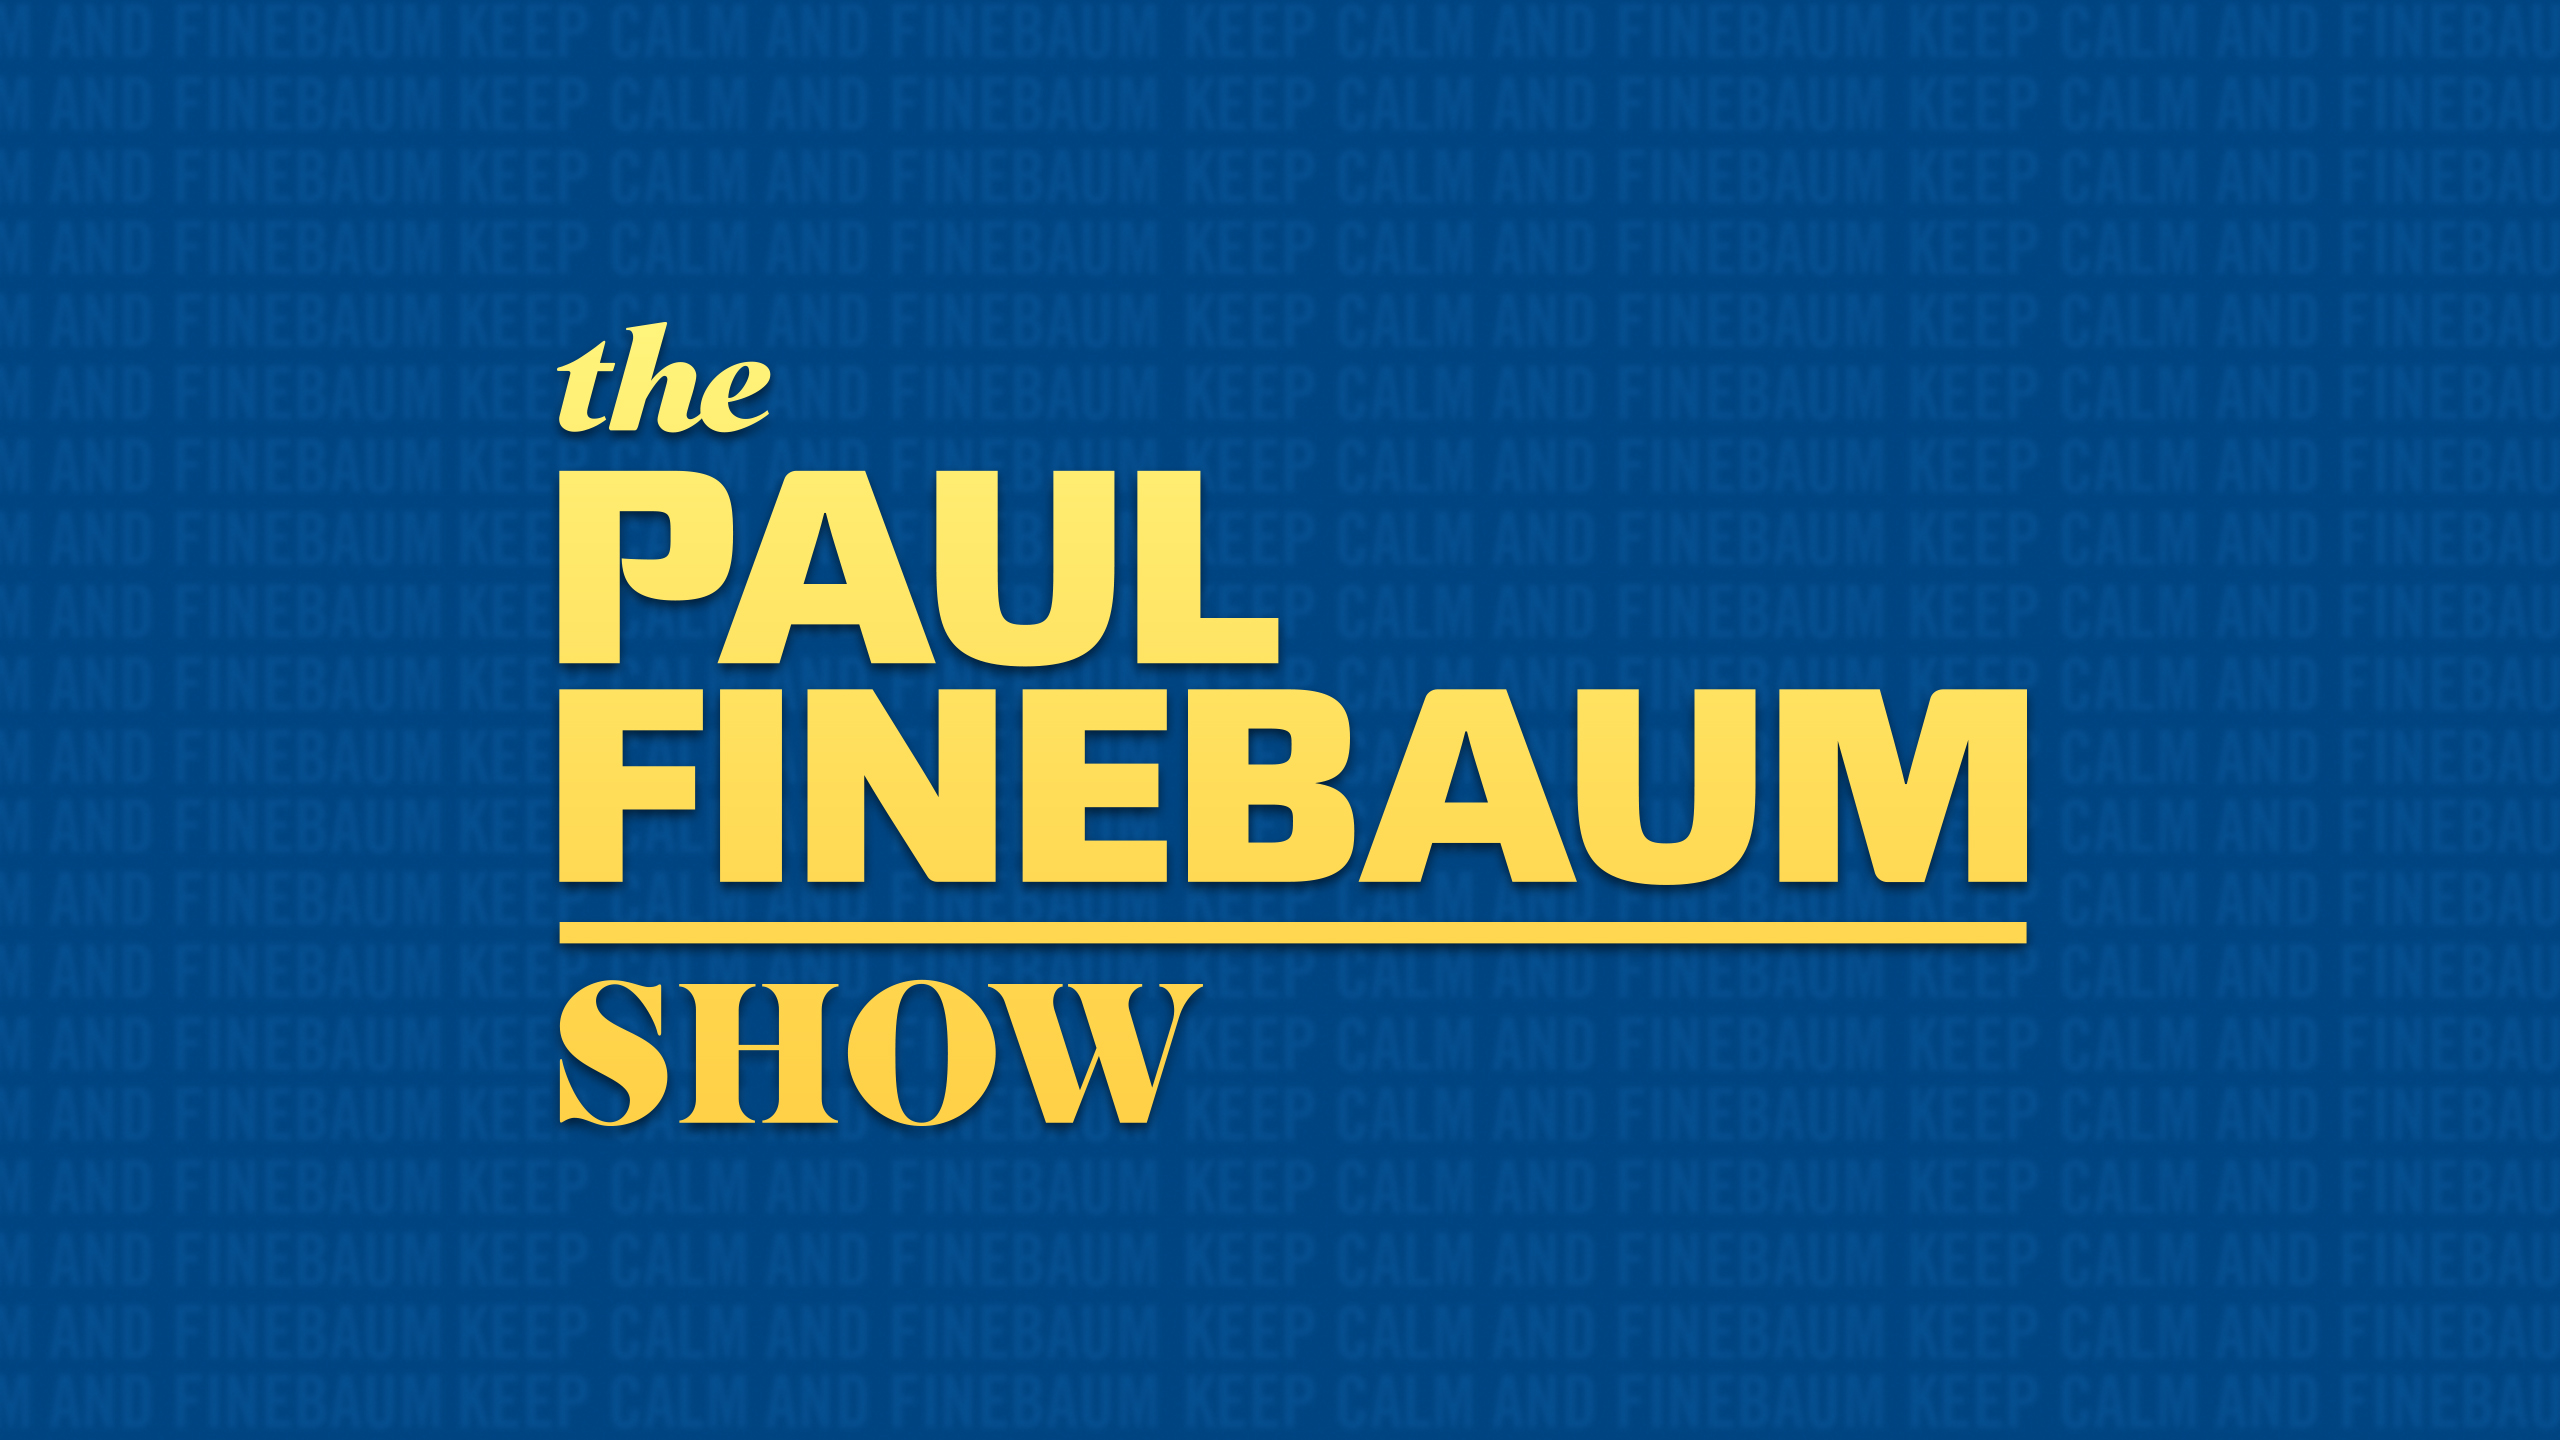 Wed, 11/14 - The Paul Finebaum Show